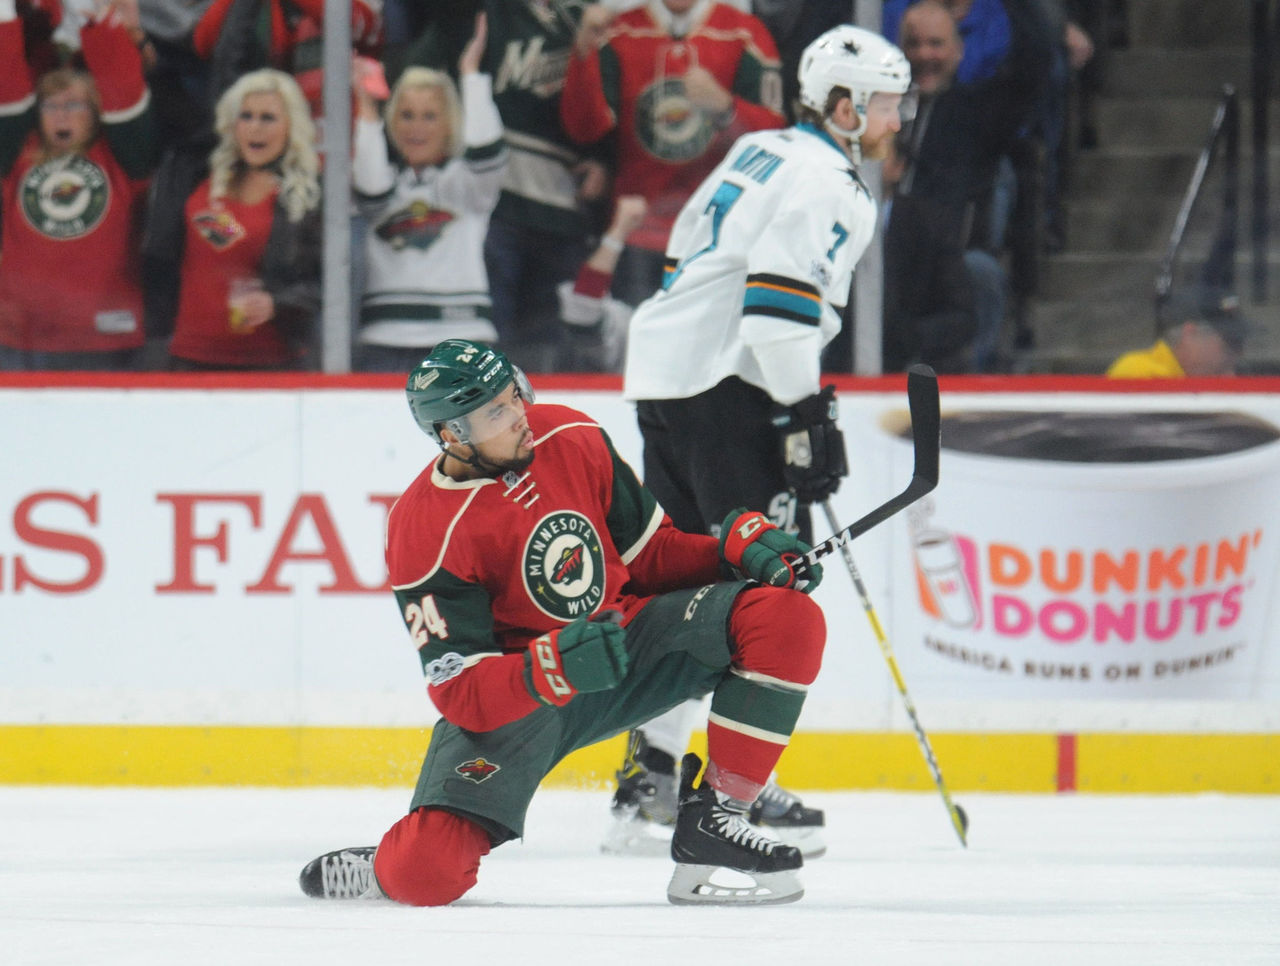 Cropped 2017 03 22t020651z 233635334 nocid rtrmadp 3 nhl san jose sharks at minnesota wild